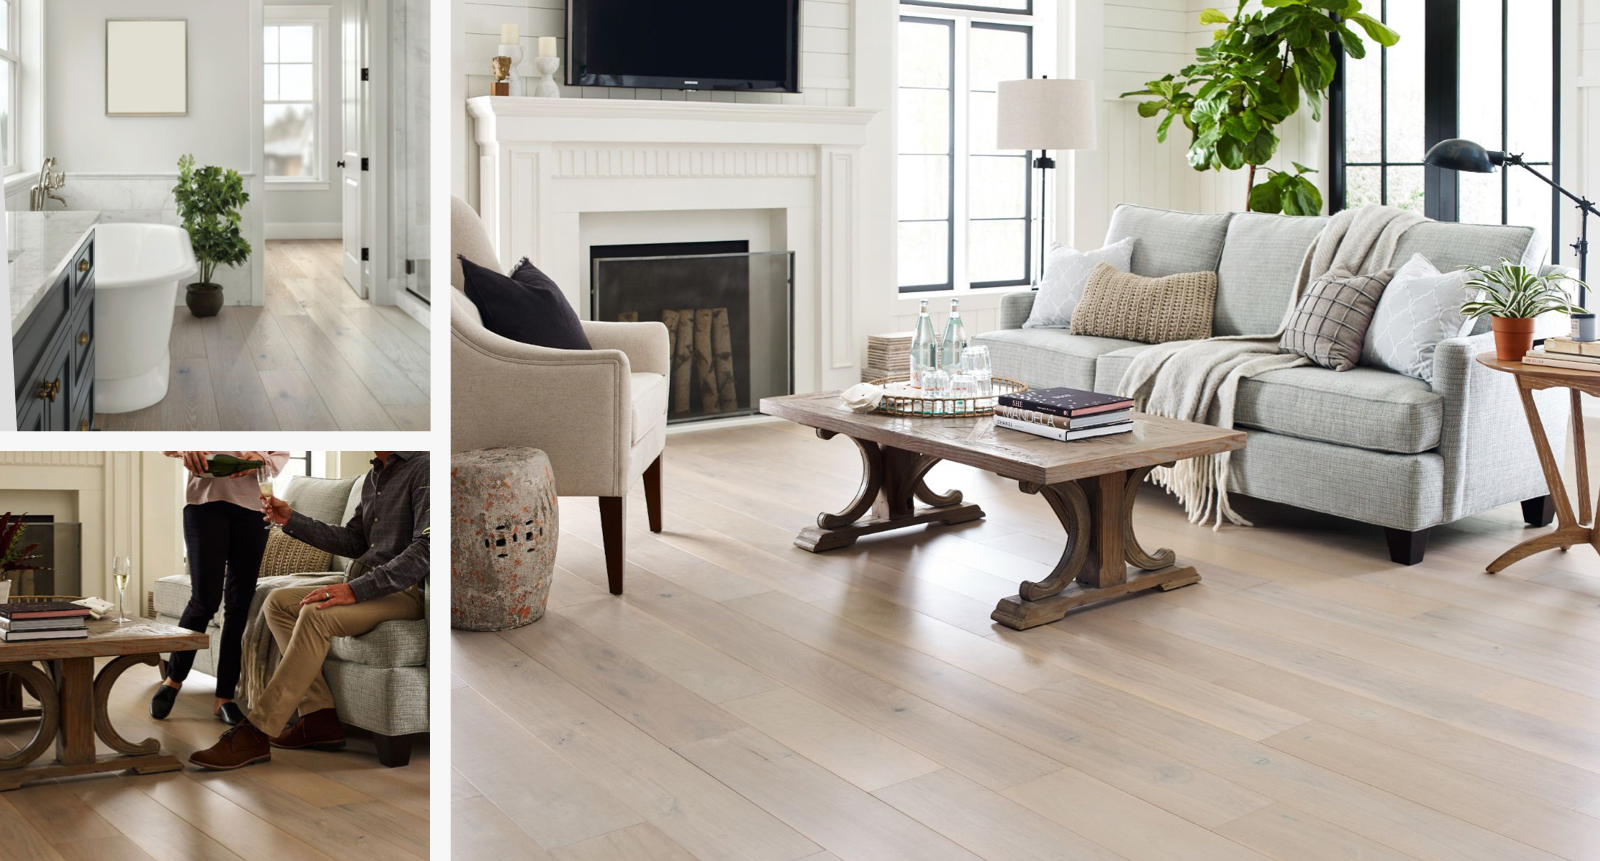 Floorte waterproof hardwood flooring for your home | Flooring Design Center